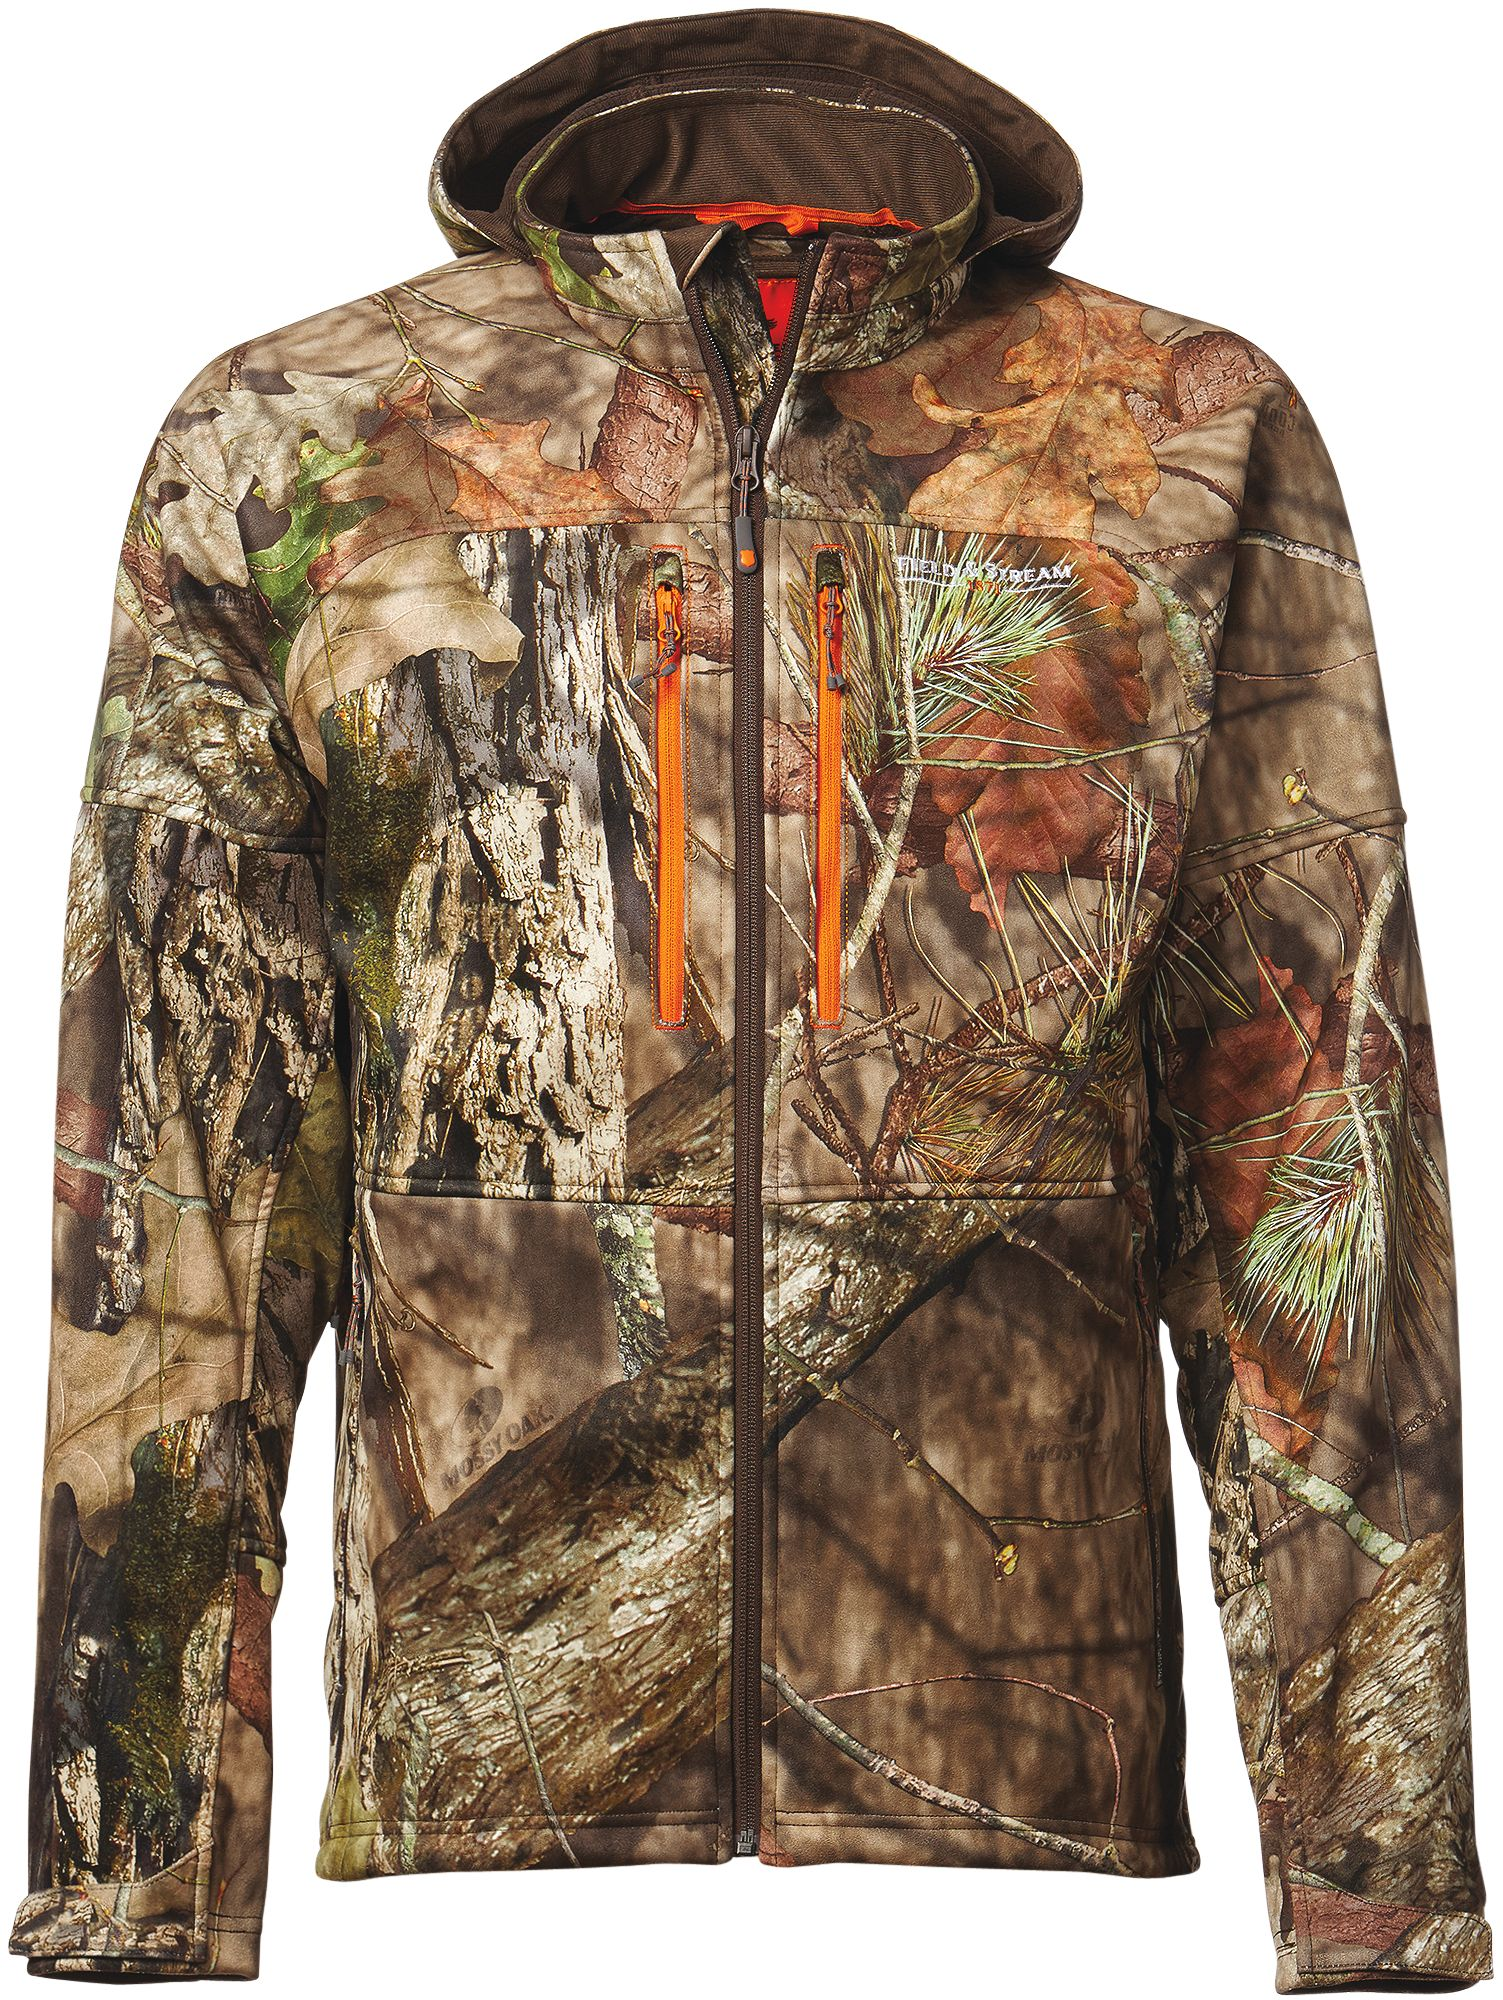 field stream men s triumph softshell hunting jacket dick s noimagefound